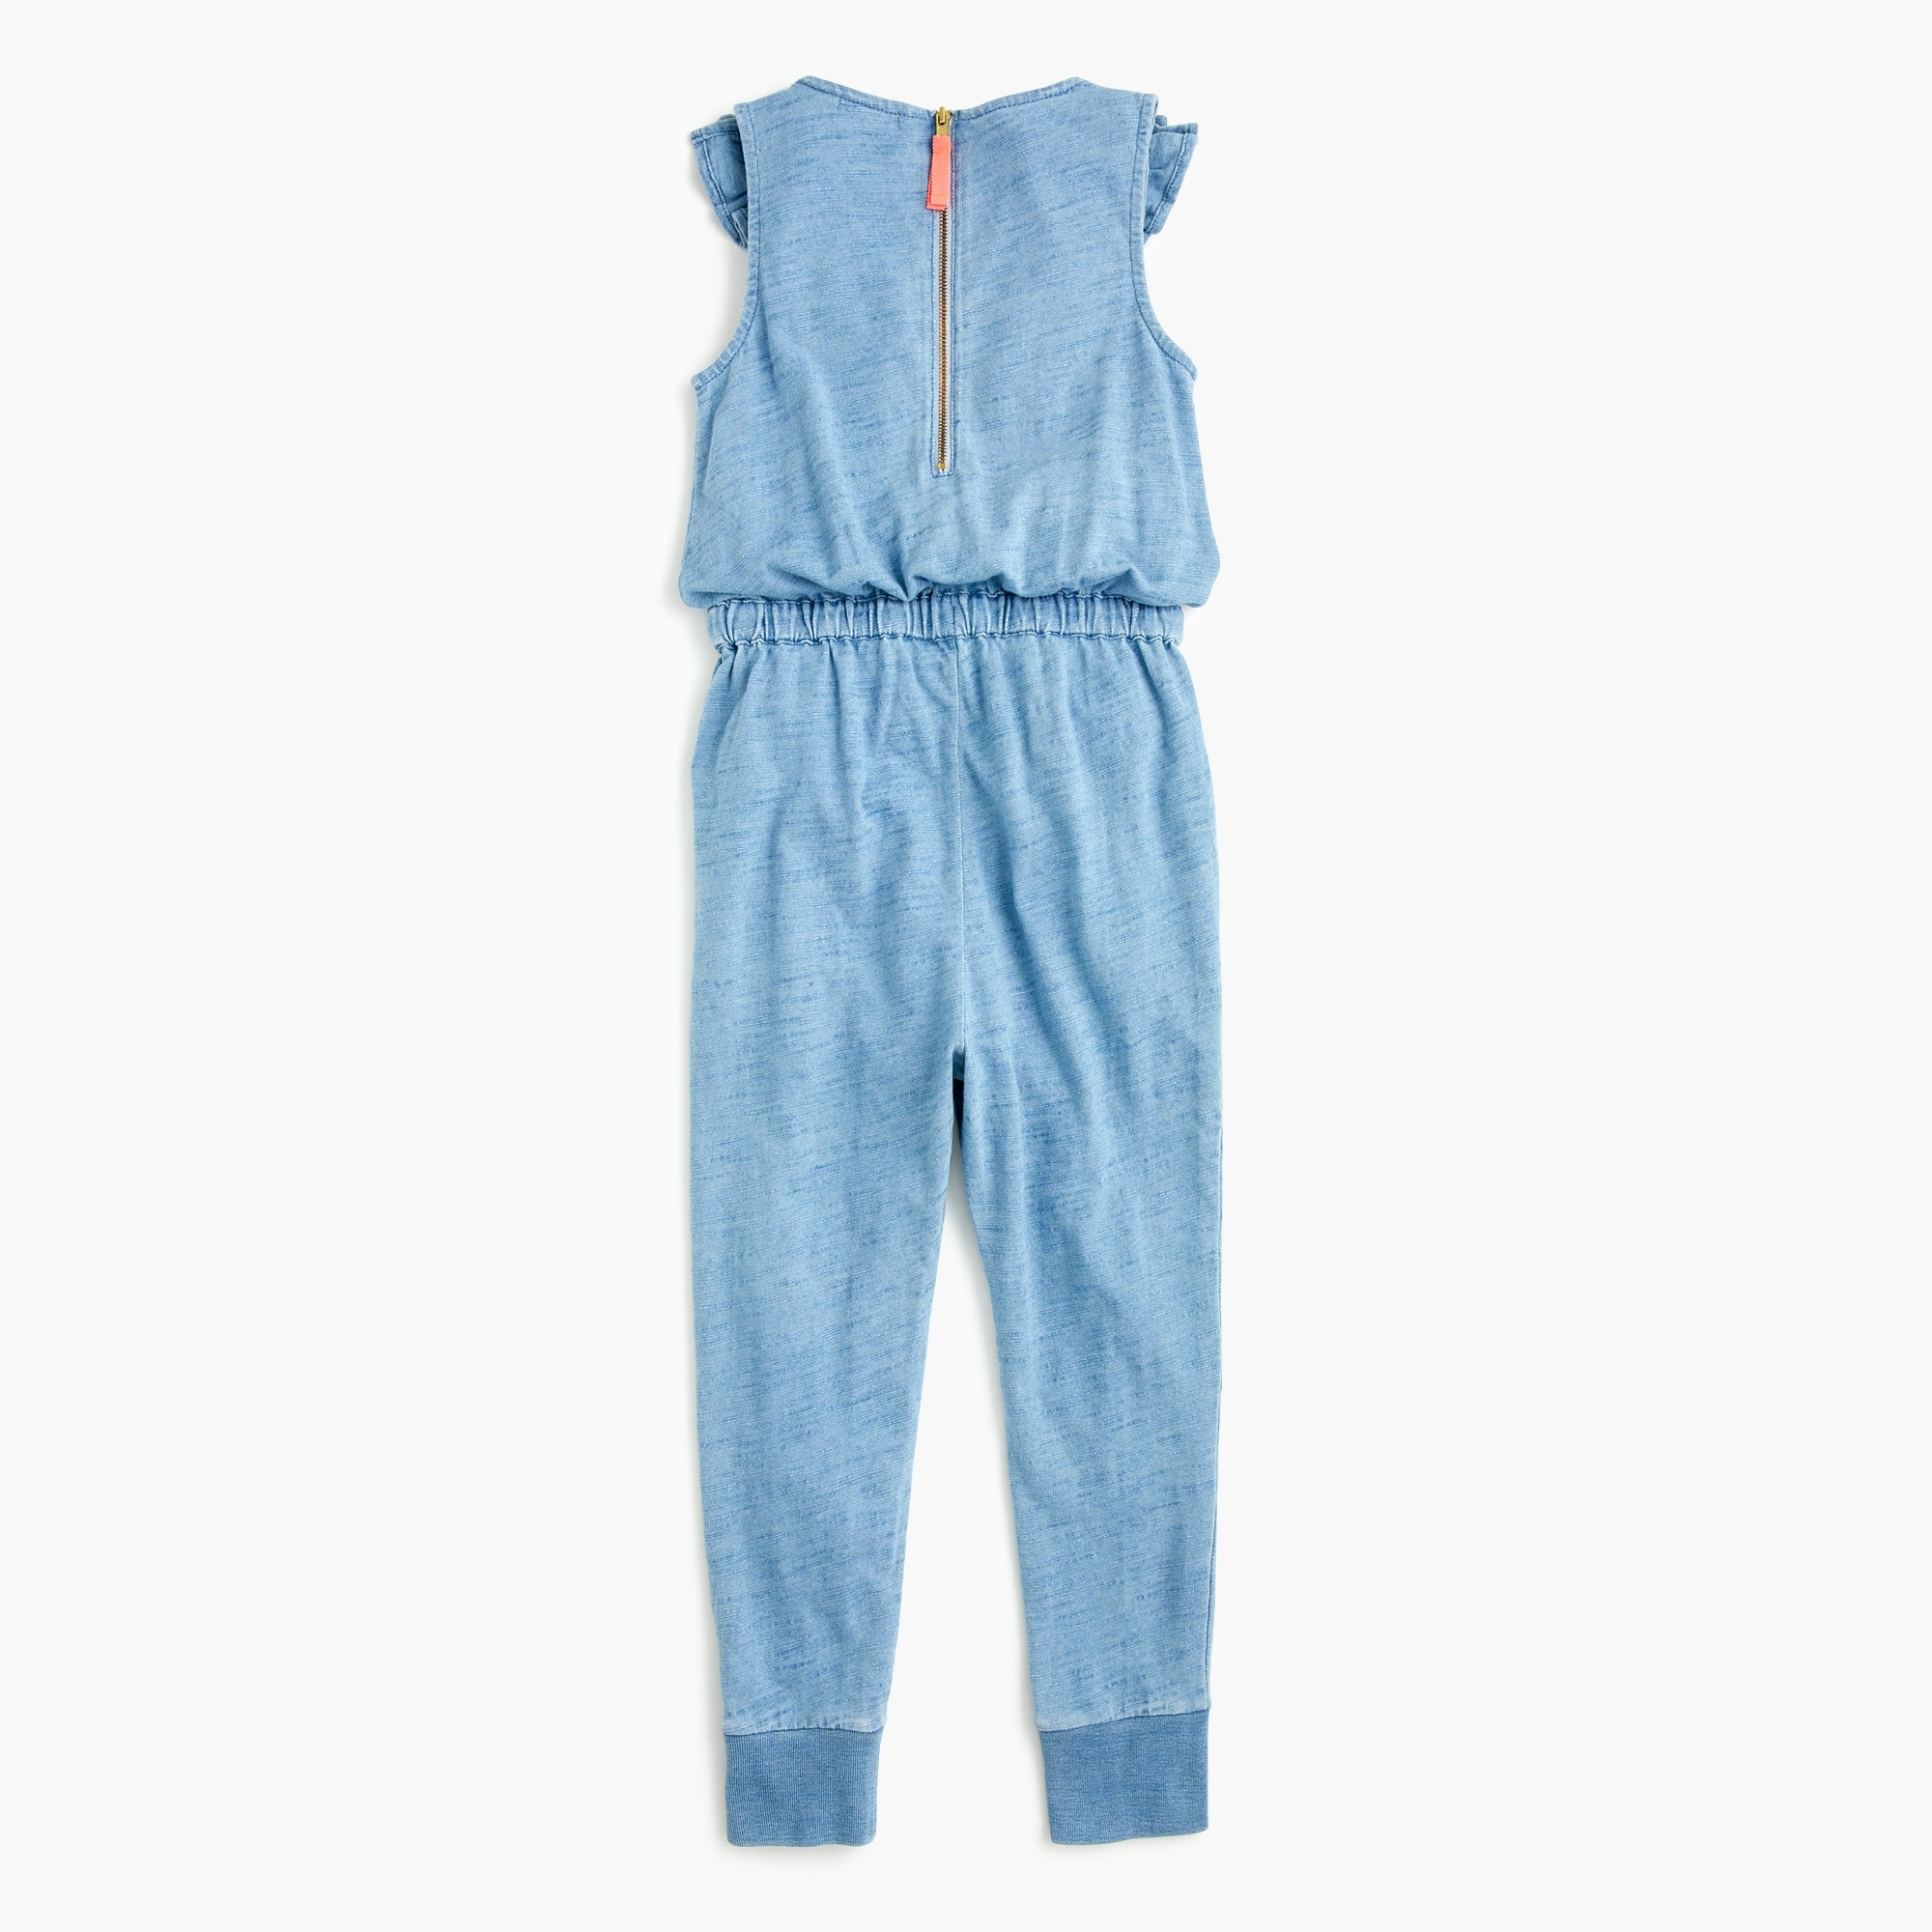 Girls' ruffle-trimmed jumpsuit